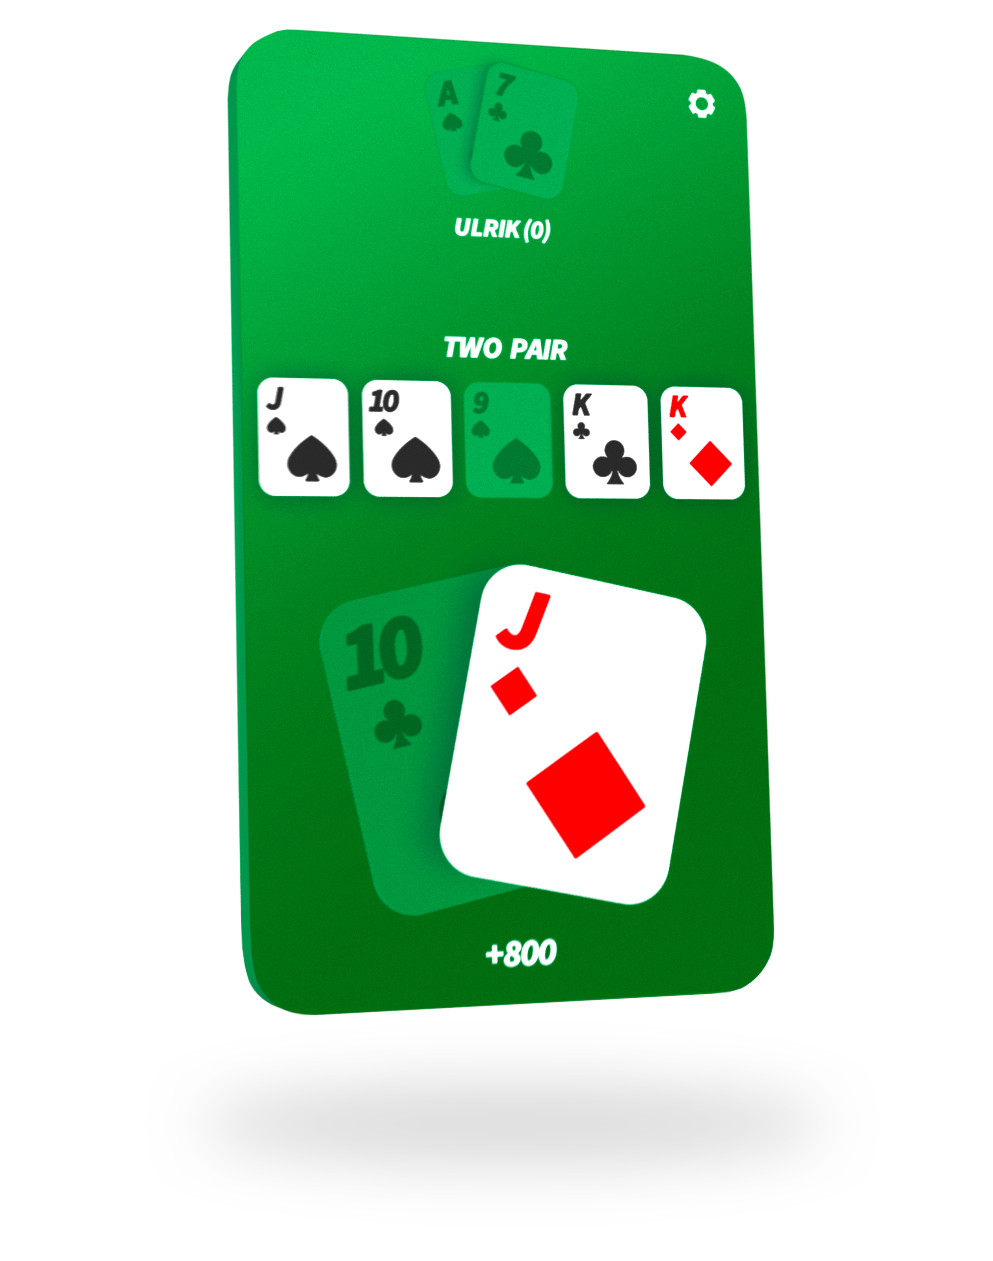 Private table poker app